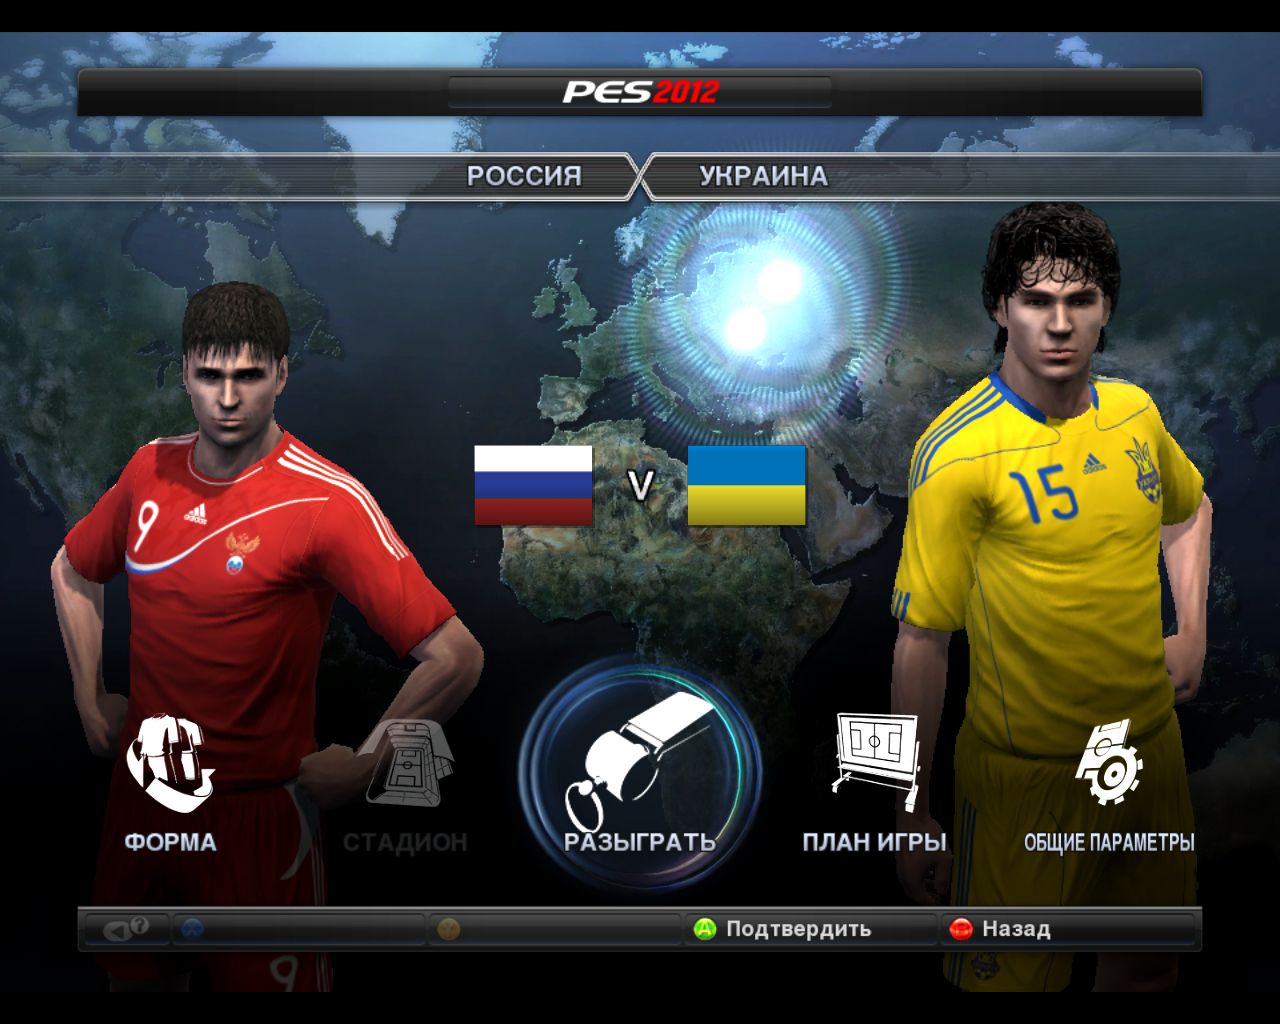 PES 12 Demo Russian Super Patch | Sporting Soccer